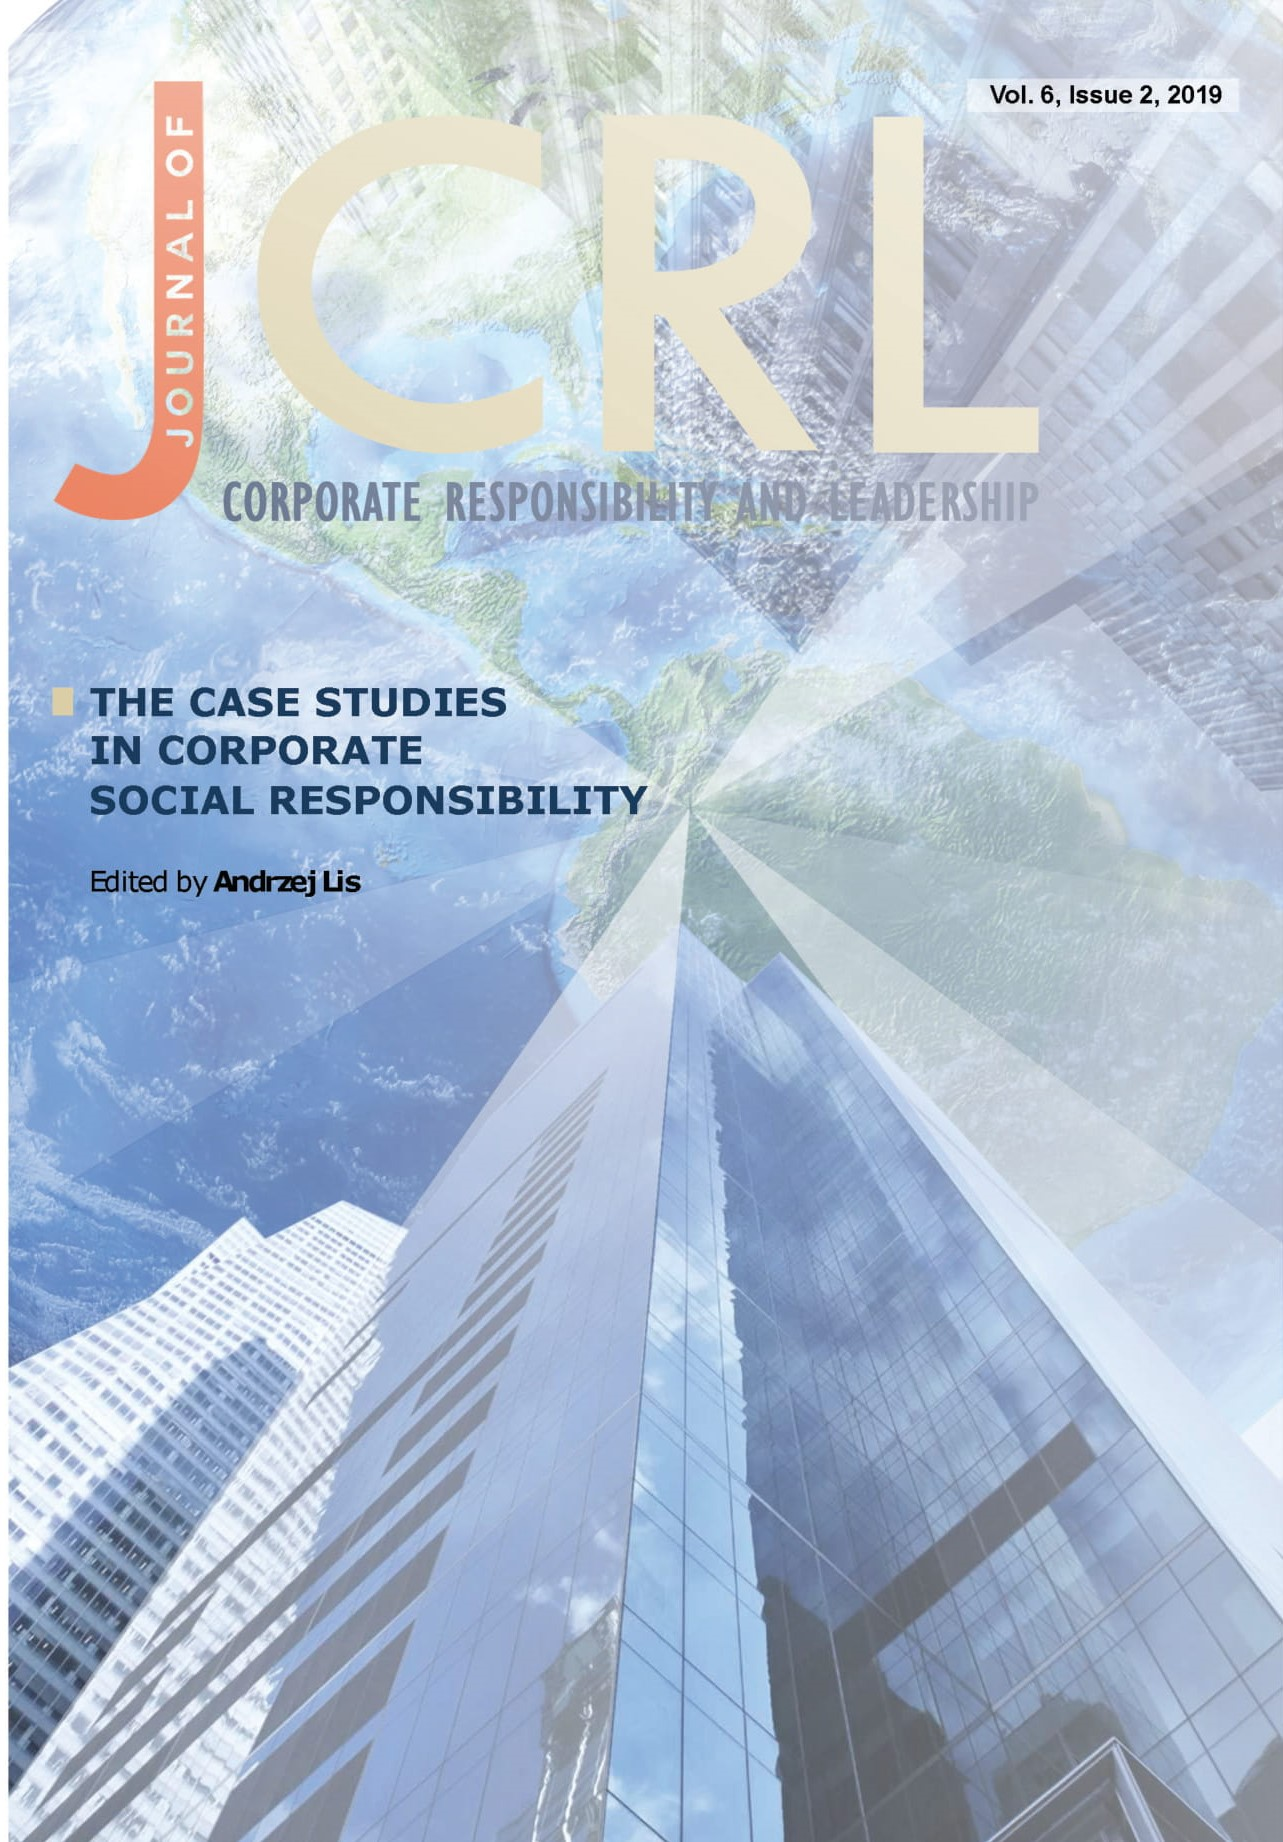 View Vol. 6 No. 2 (2019): The Case Studies in Corporate Social Responsibility